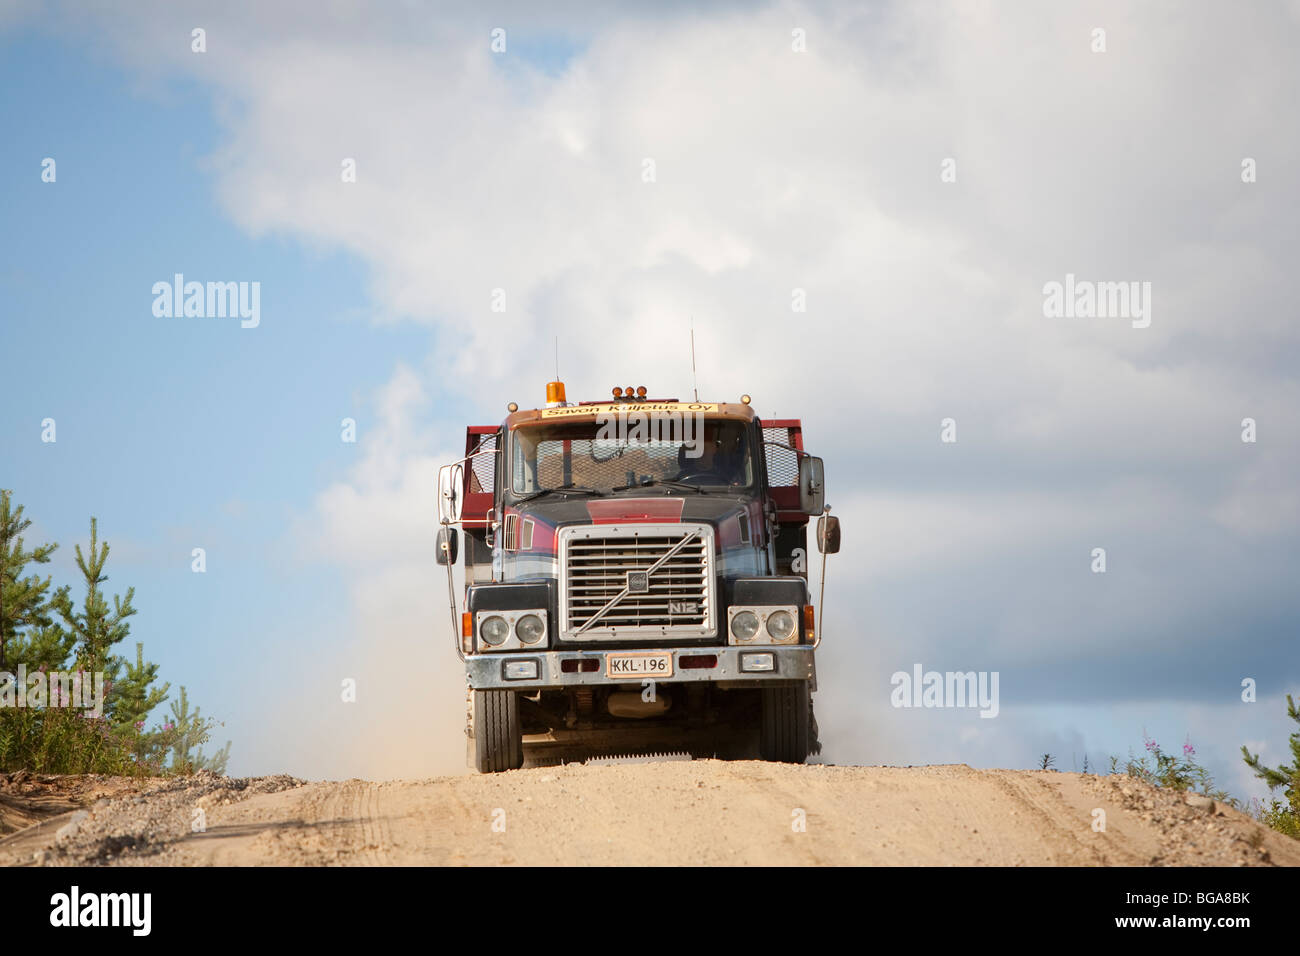 Old Volvo lorry transporting sand from a sandpit - Stock Image